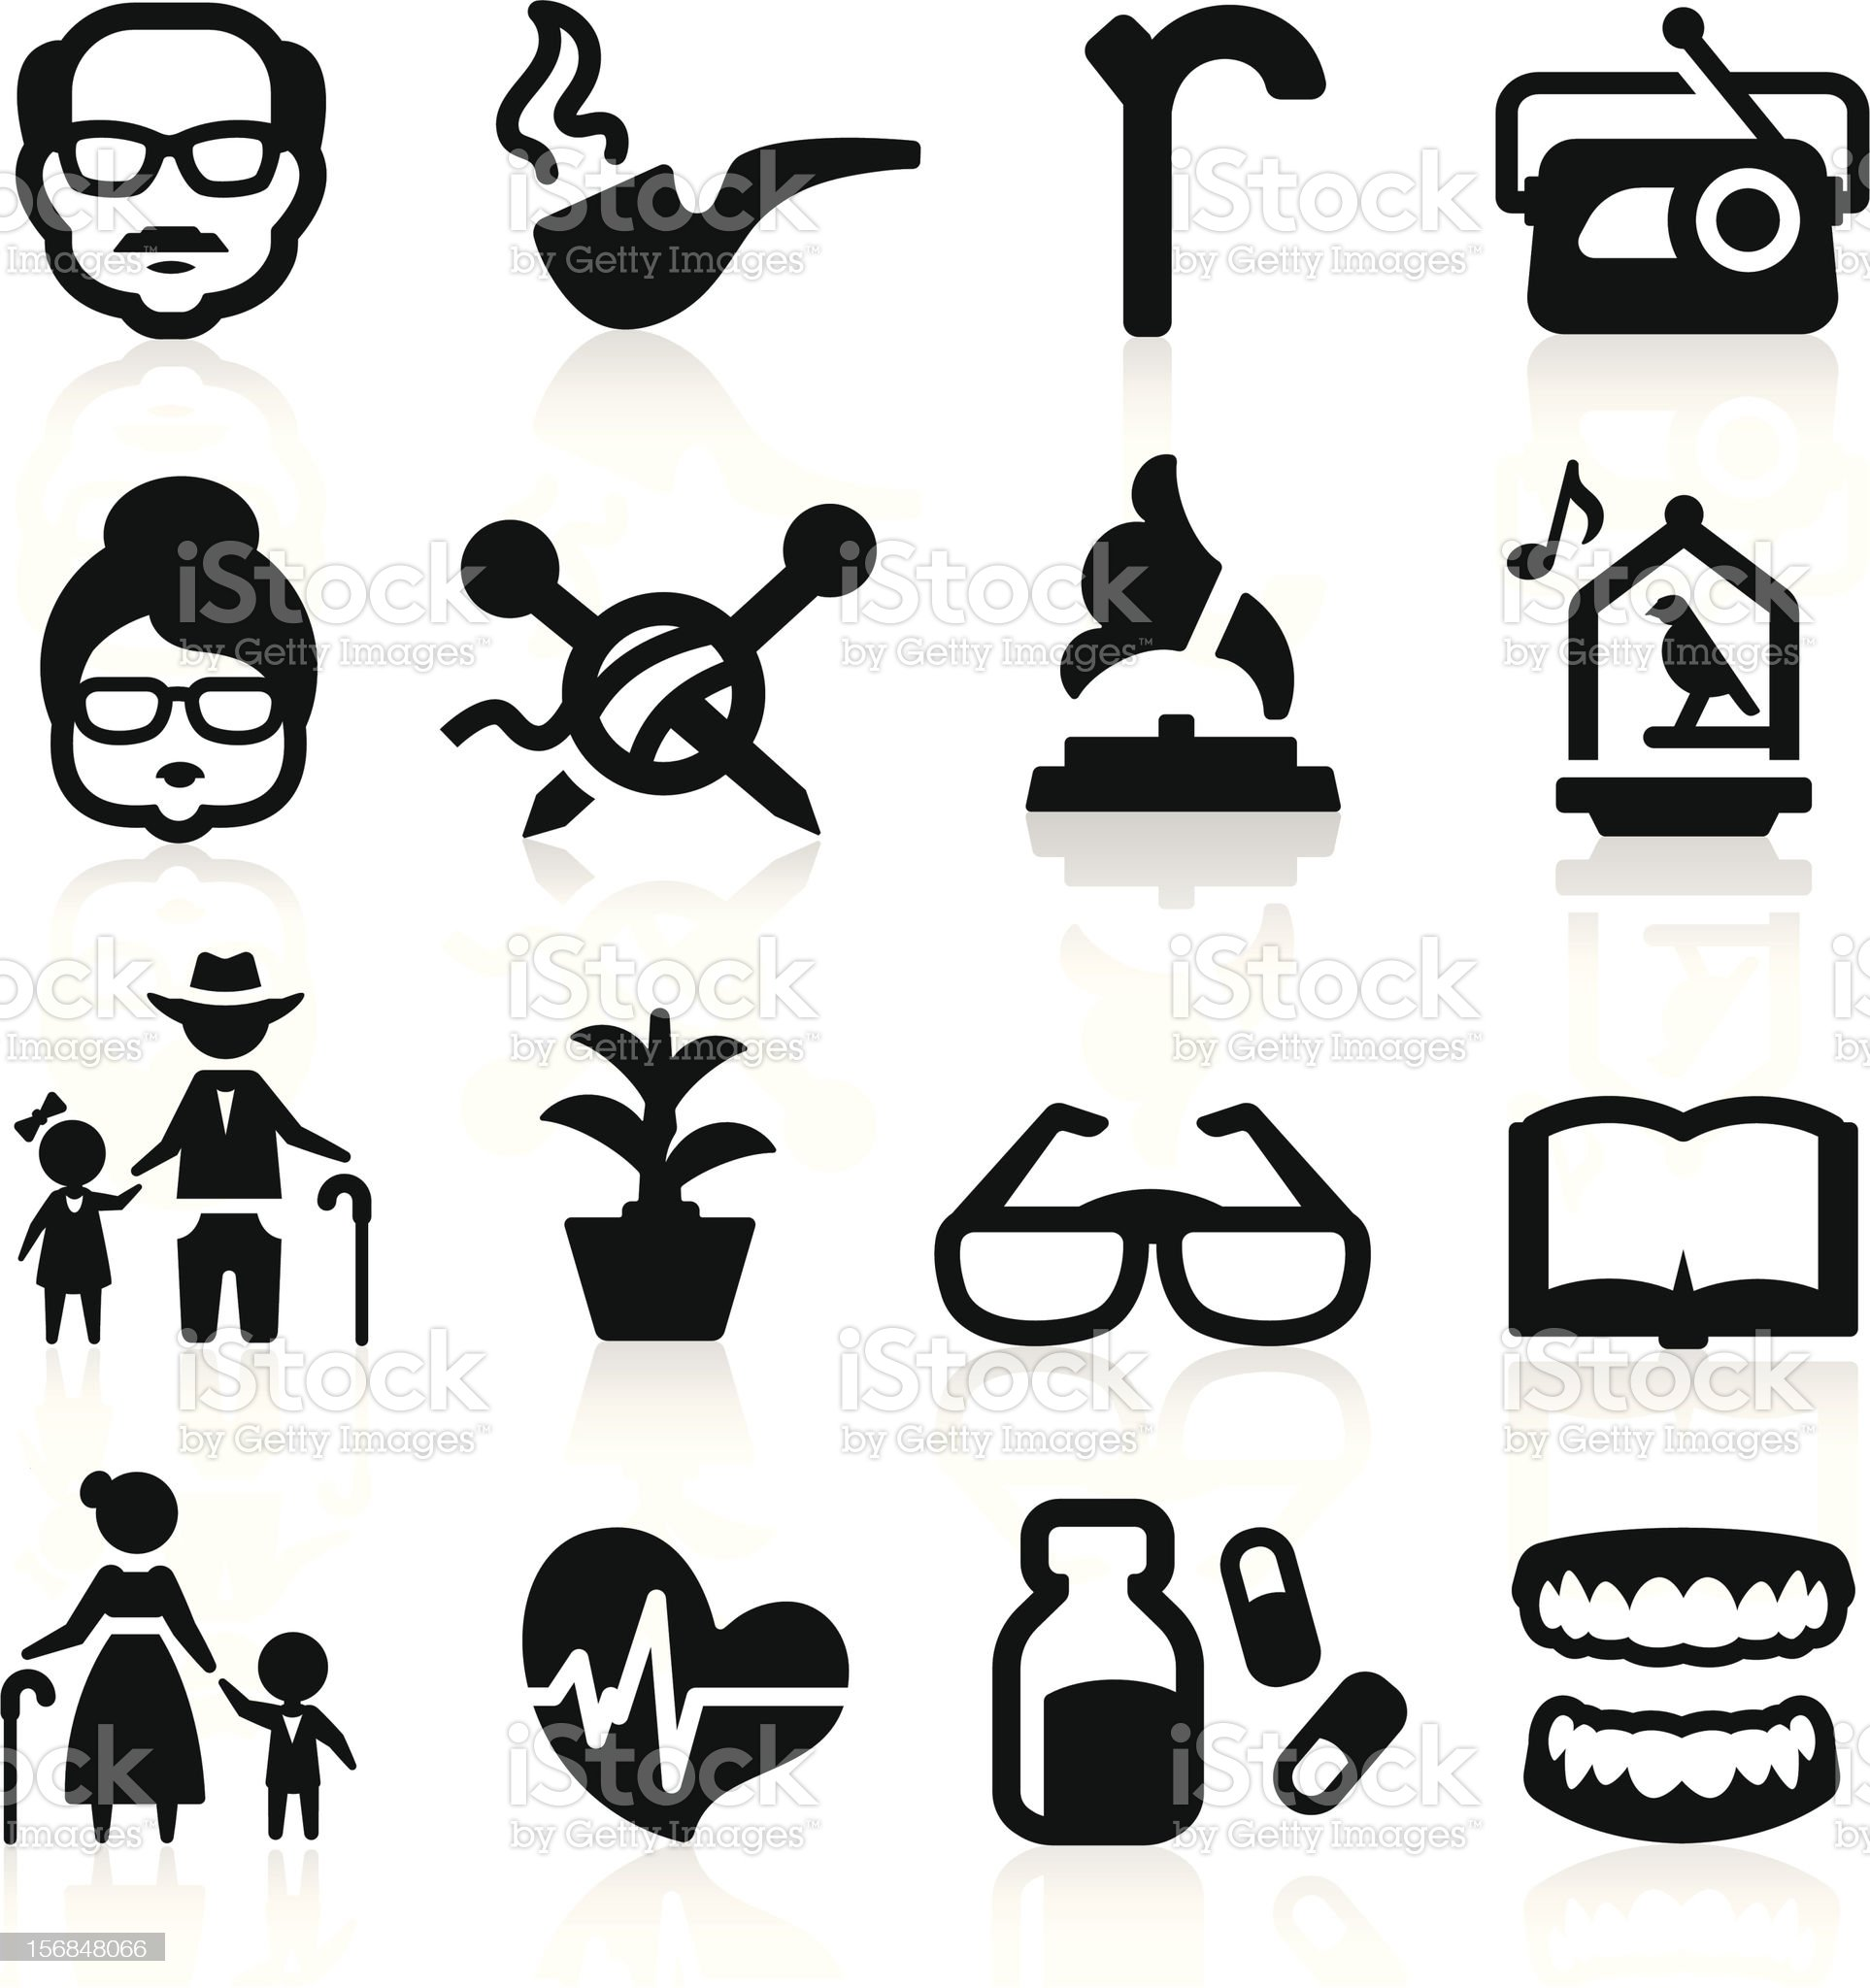 Senior lifestyle icons set - Elegant series royalty-free stock vector art